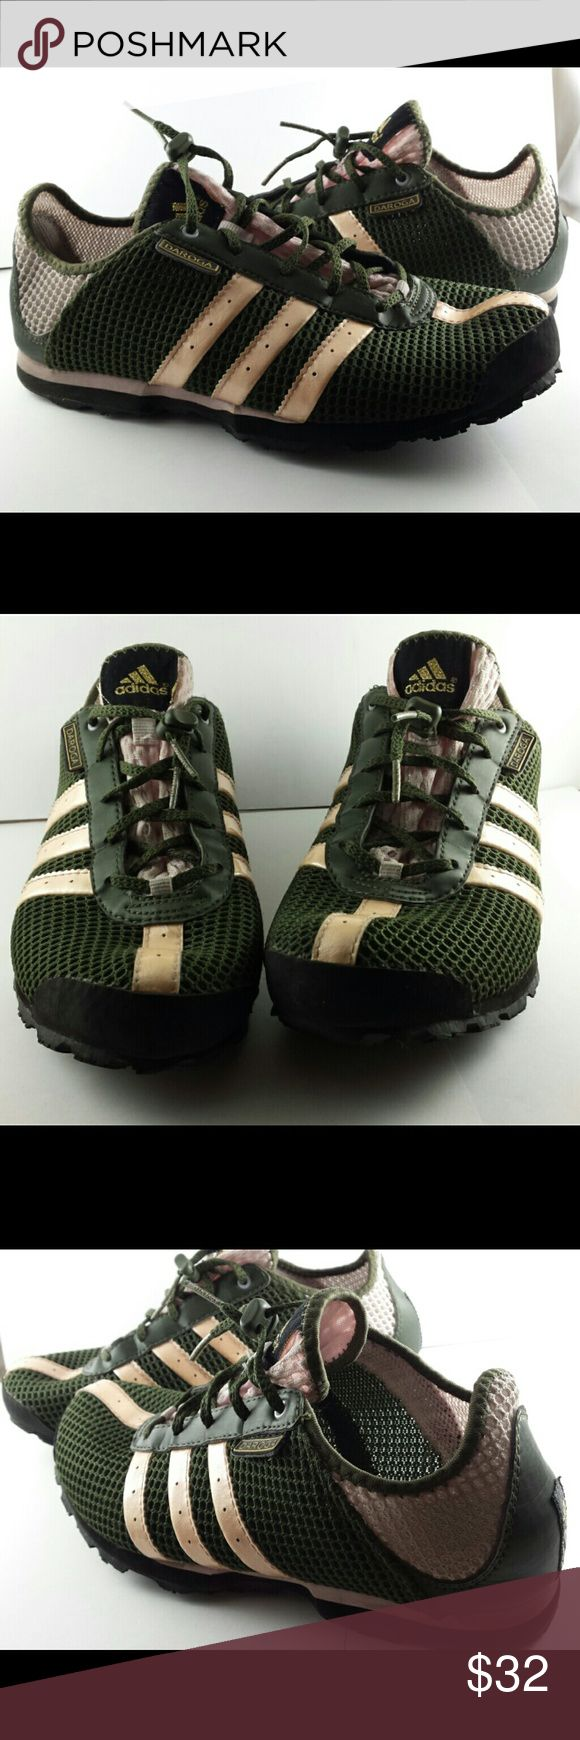 Adidas Daroga Mesh Green/Light Pink Trail Shoes Adidas Daroga Mesh Trail Shoes in Dark Green and Light Pink. Worn twice, in perfect shape. Very lightweight and the mesh provides breeze. Very comfortable. Size 9 Adidas Shoes